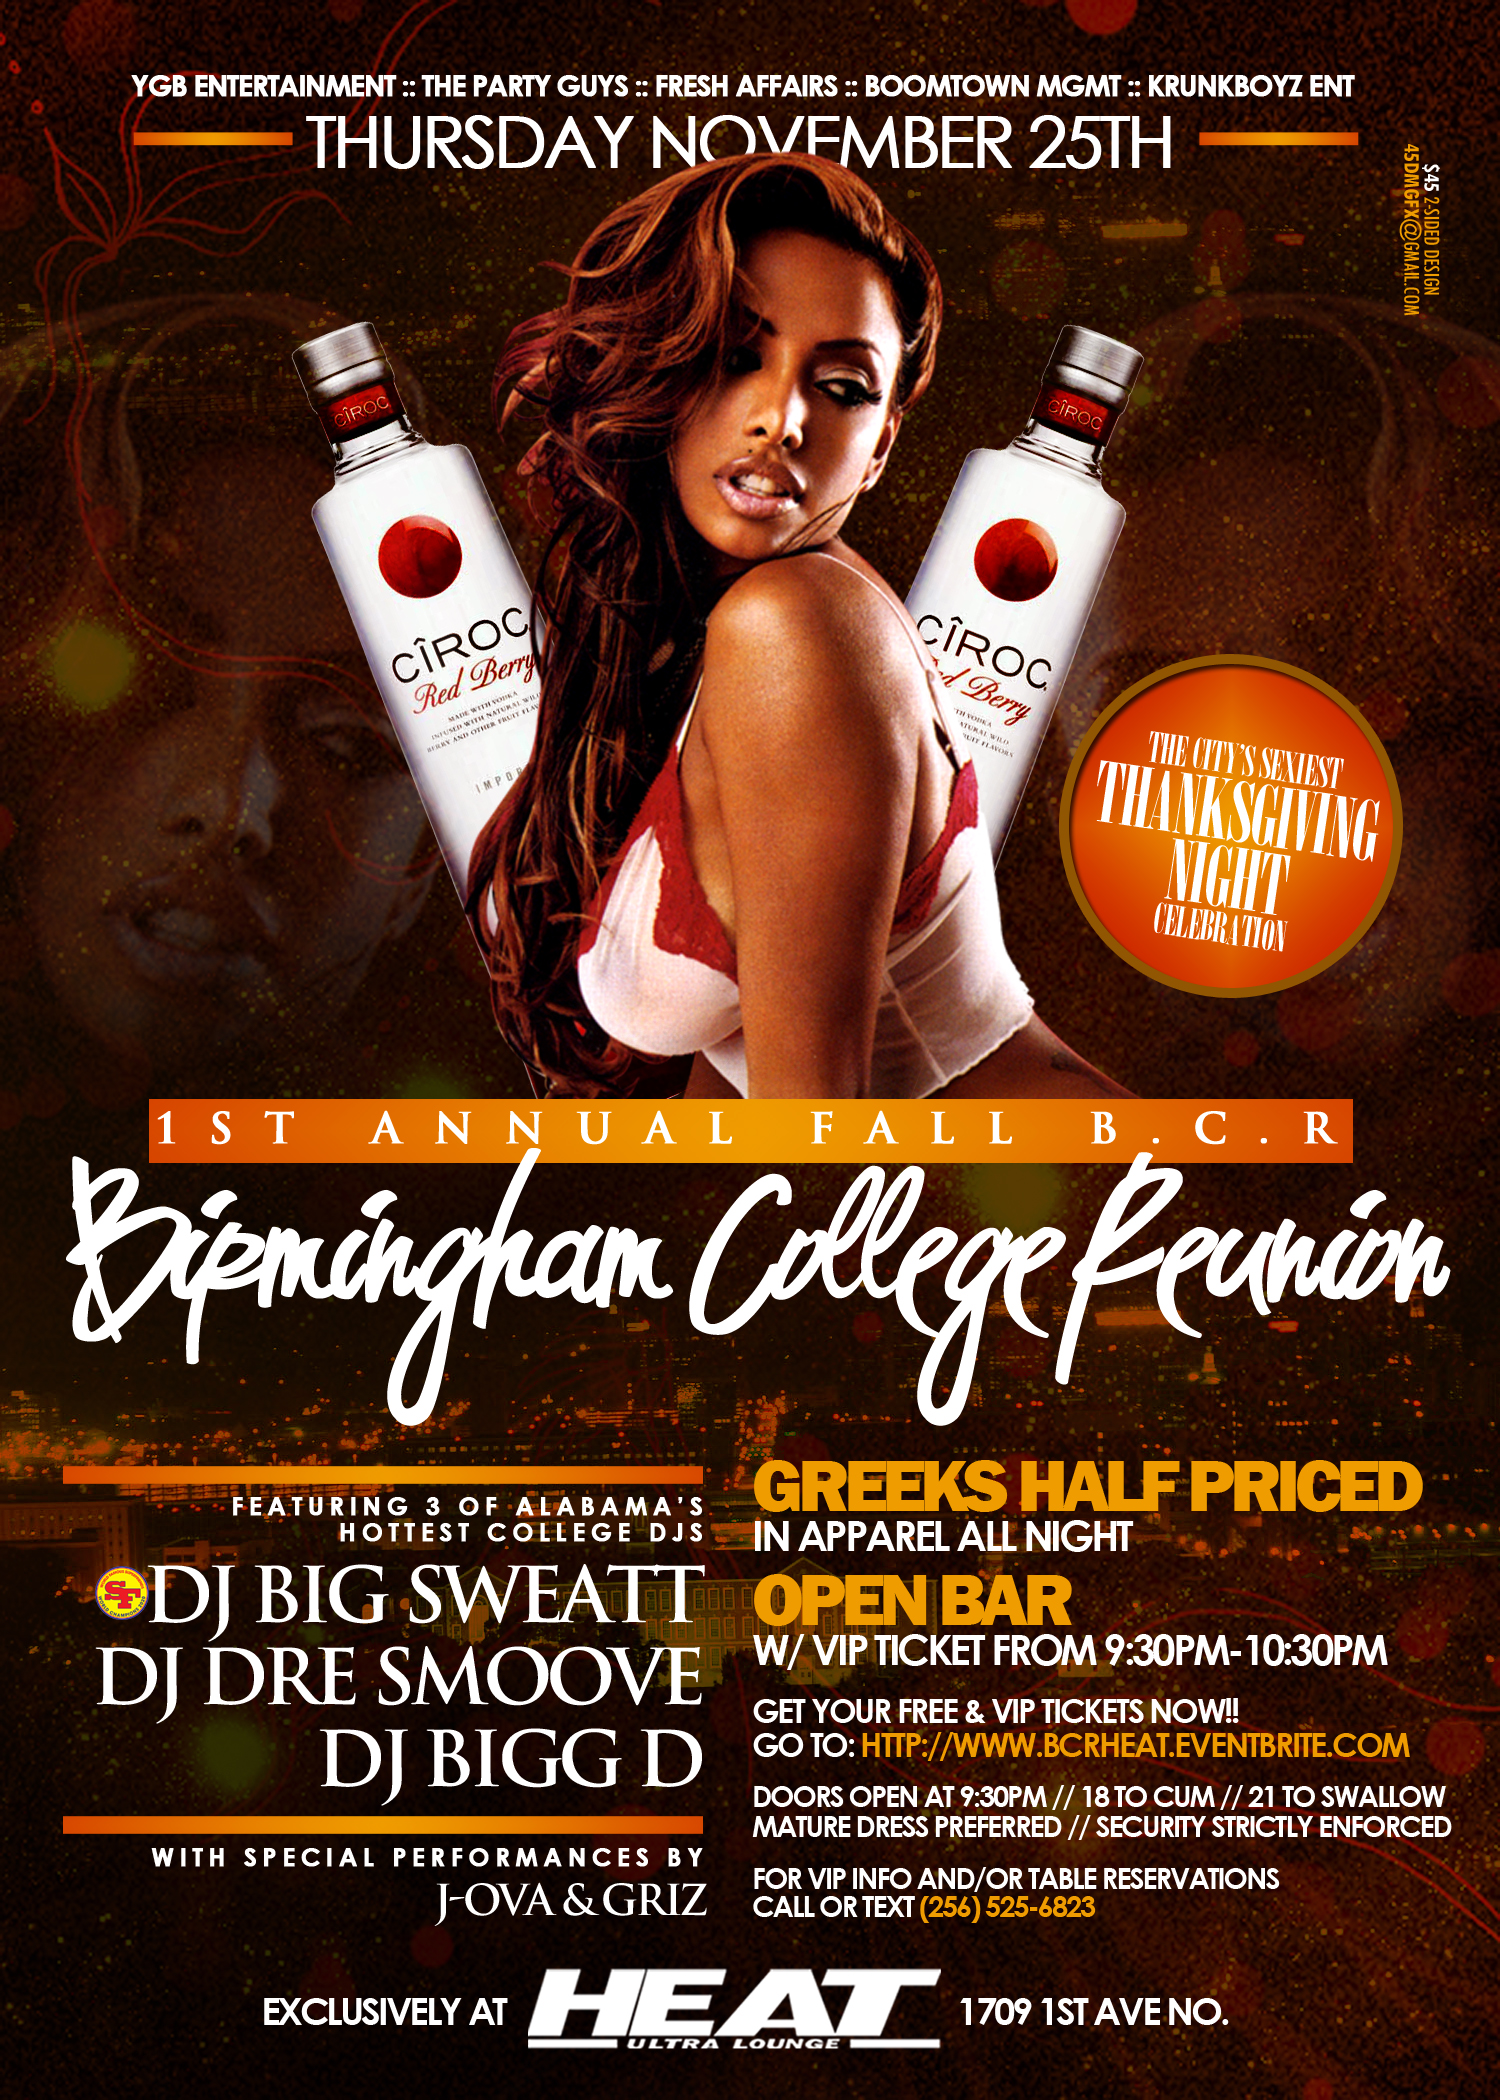 Birmingham College Reunion Flyer